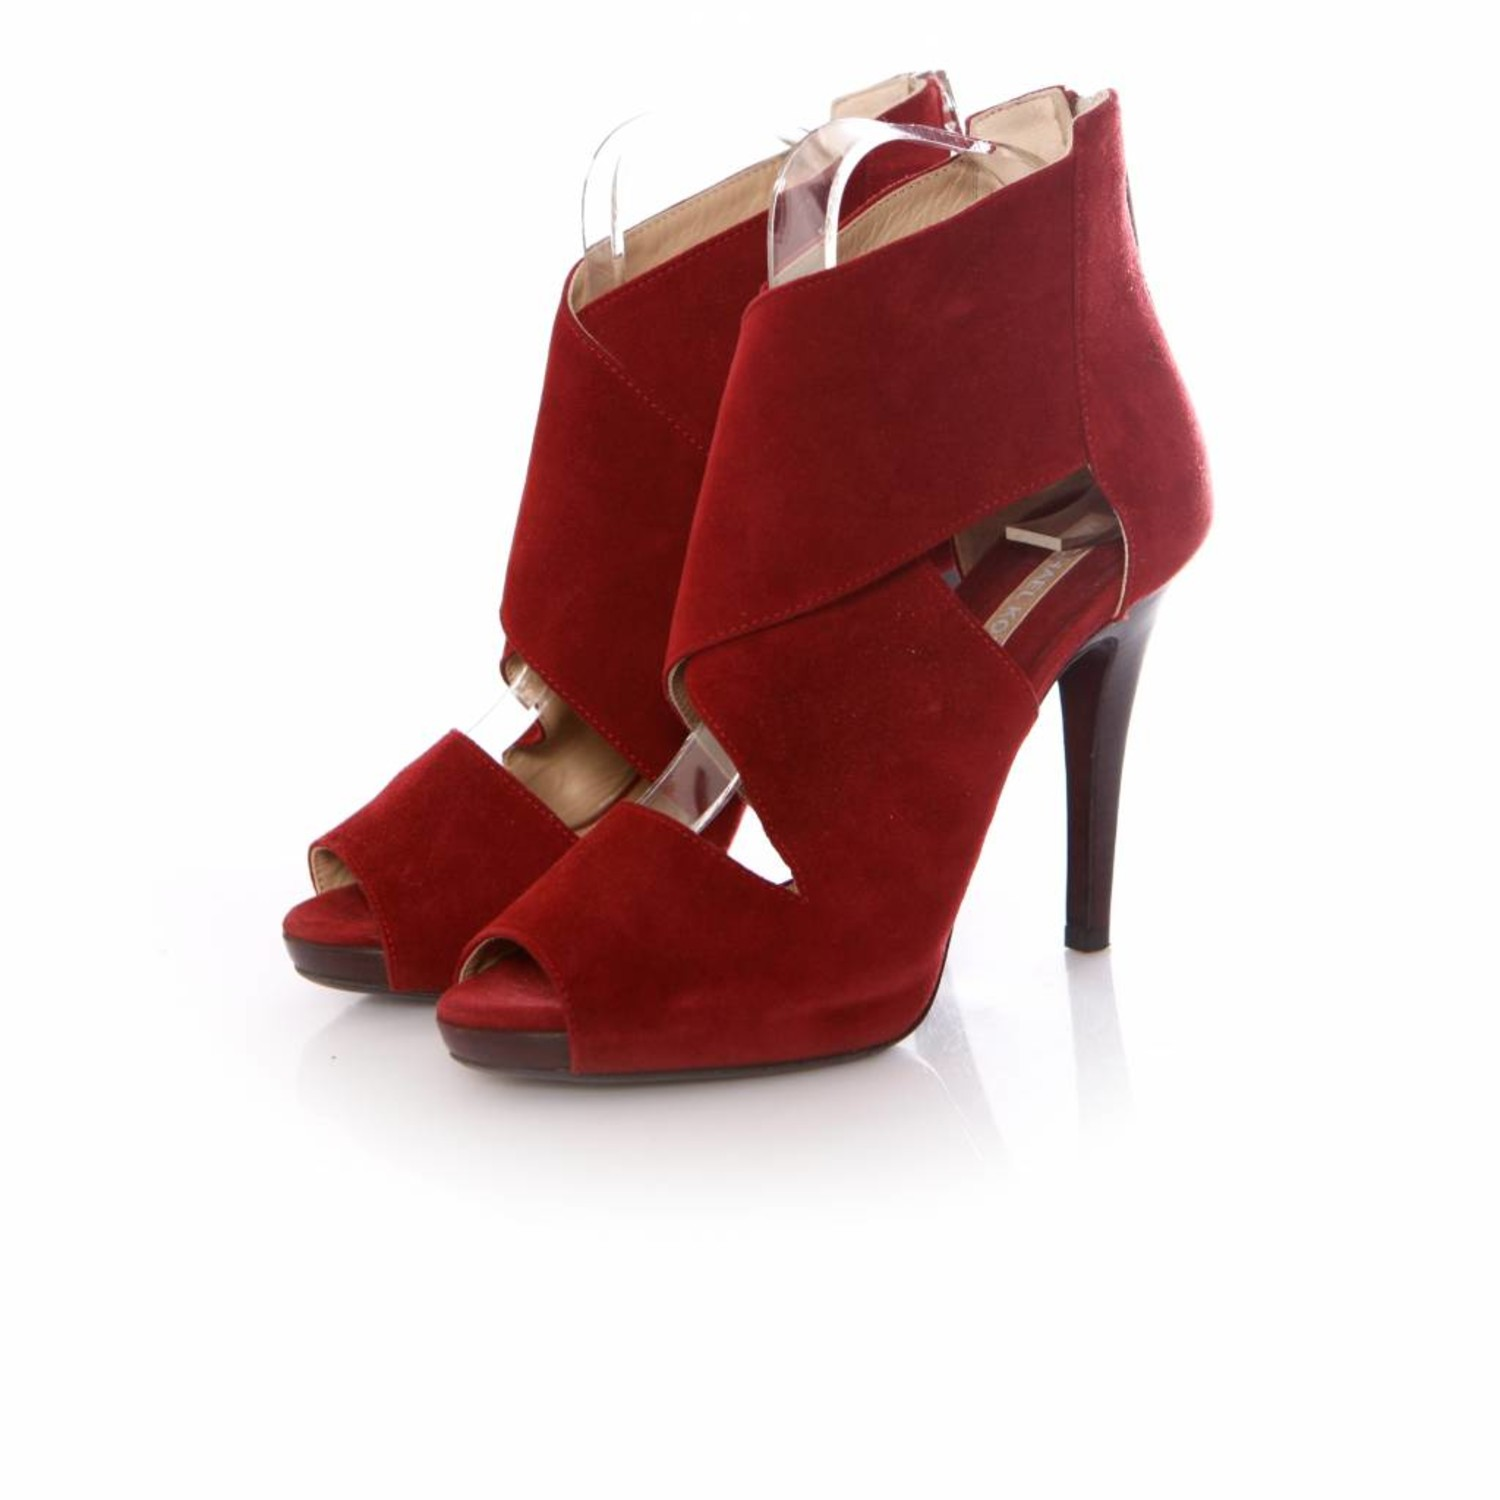 Michael Kors, cherry red coloured suede